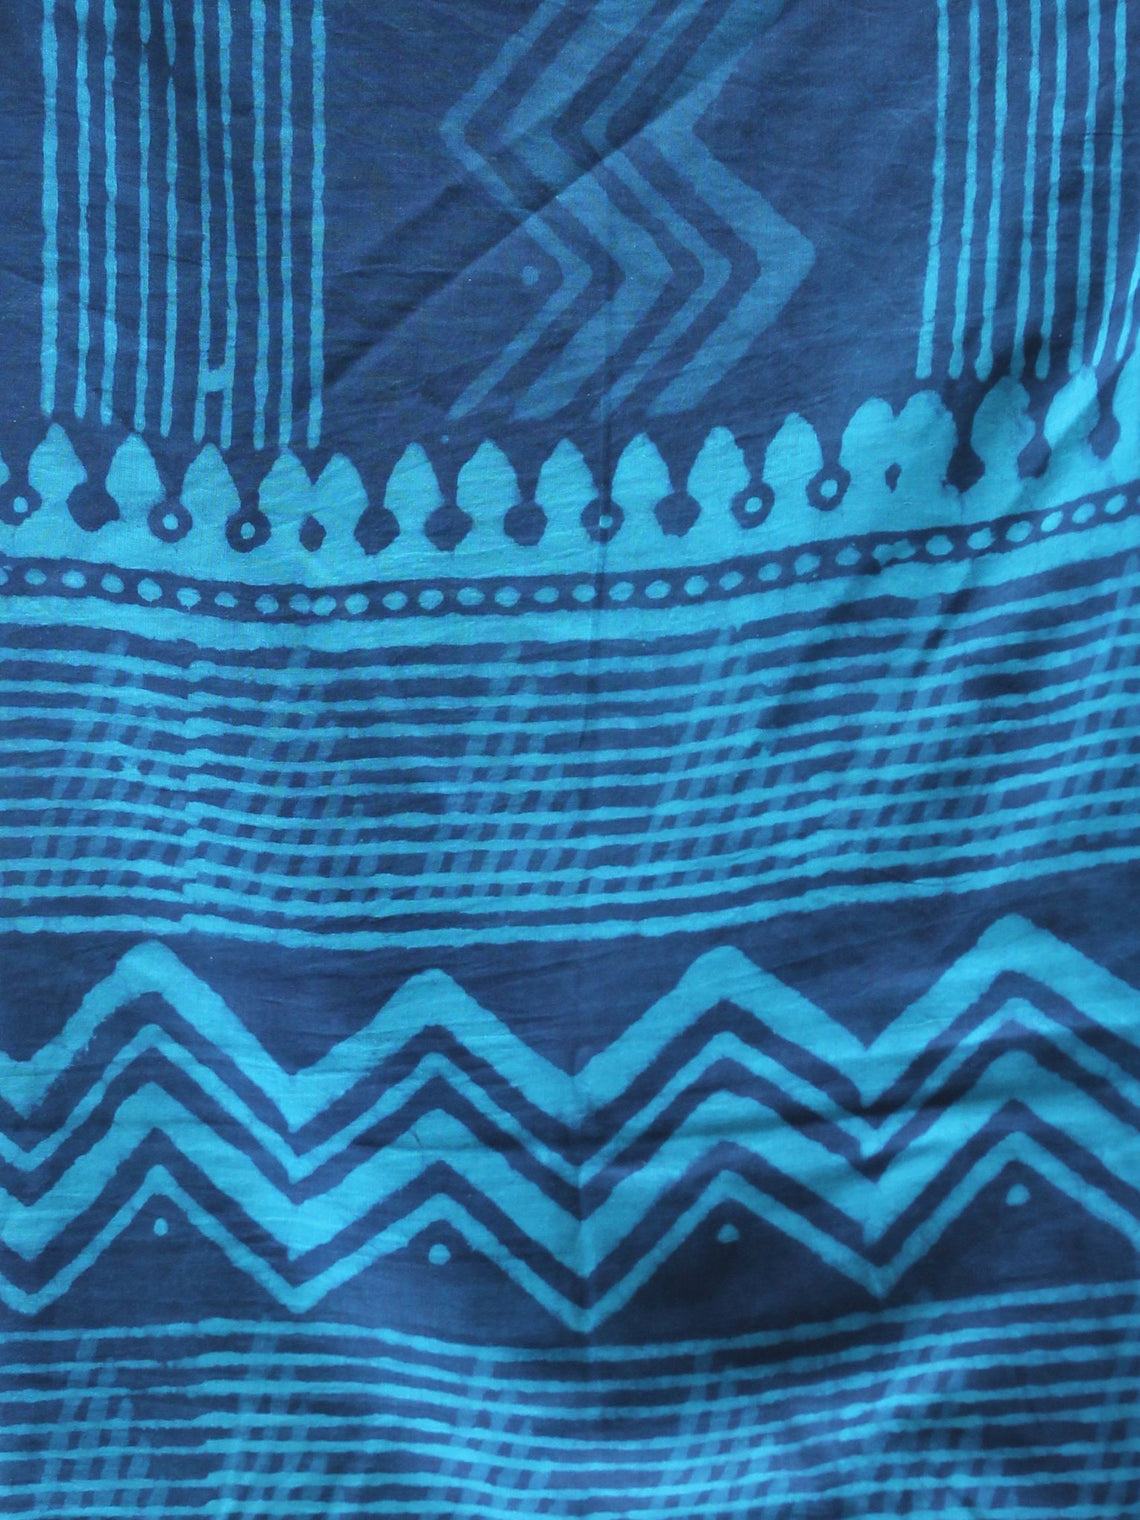 Indigo Sky Blue Cotton Hand Block Printed Dupatta - D04170423